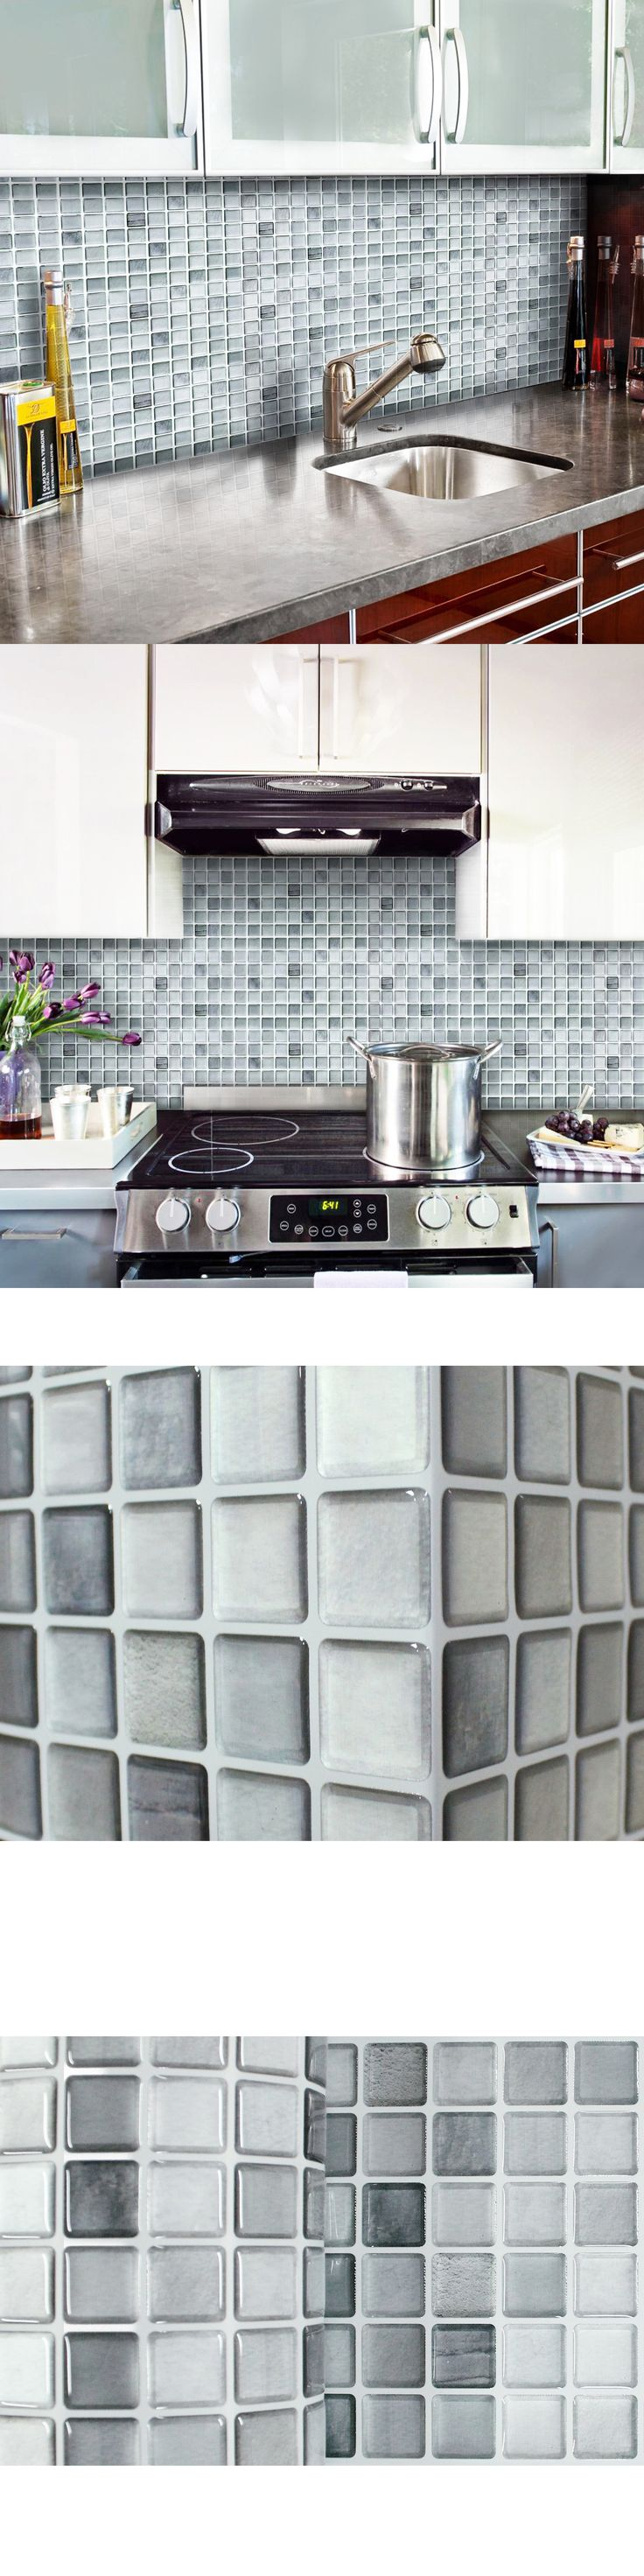 Floor and Wall Tiles 45800: Self Adhesive Wall Tiles Peel And Stick Backsplash Kitchen Bathroom Gray Silver -> BUY IT NOW ONLY: $43.94 on eBay!